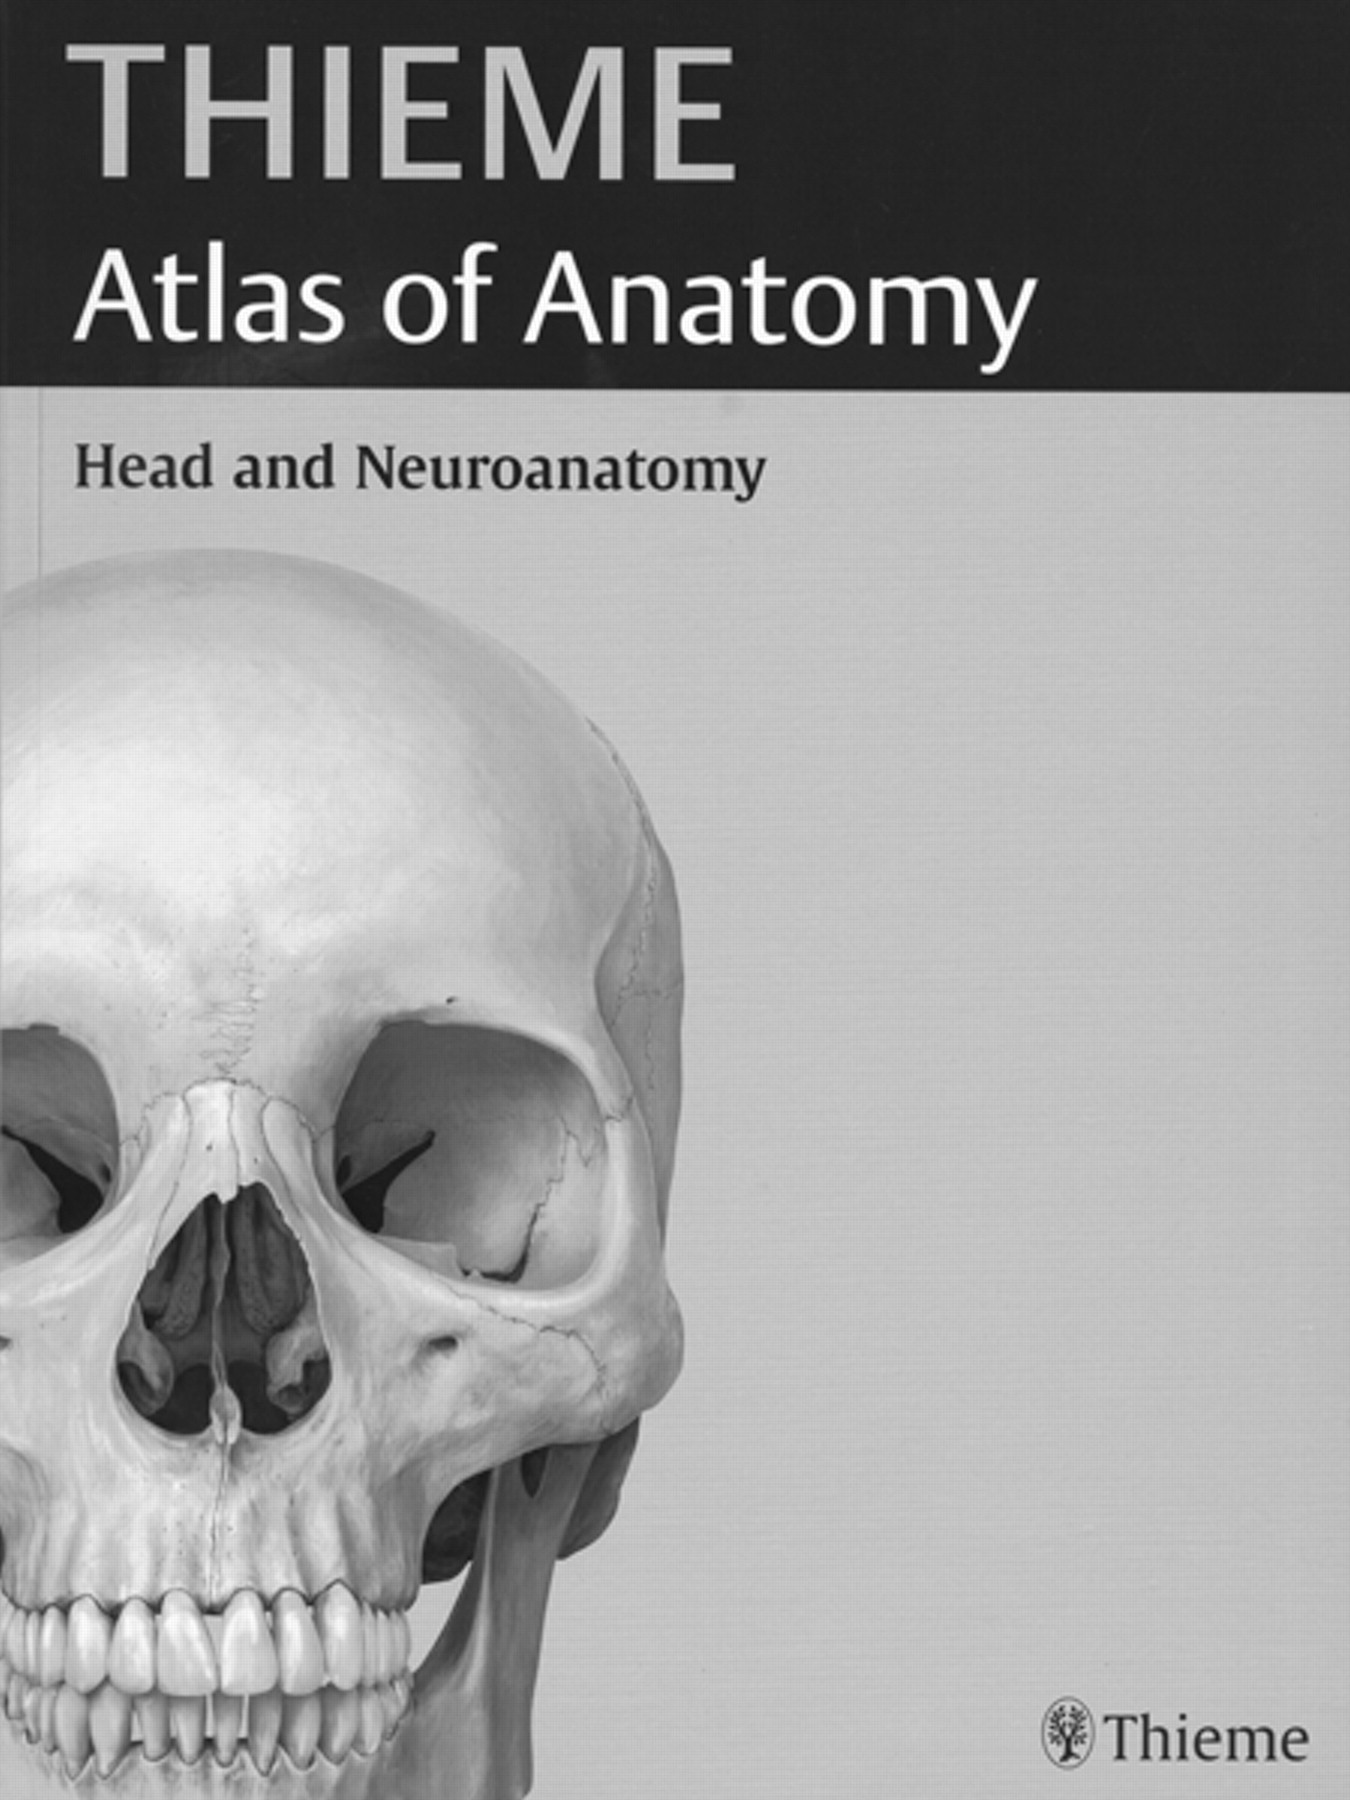 Head And Neuroanatomy Thieme Atlas Of Anatomy American Journal Of